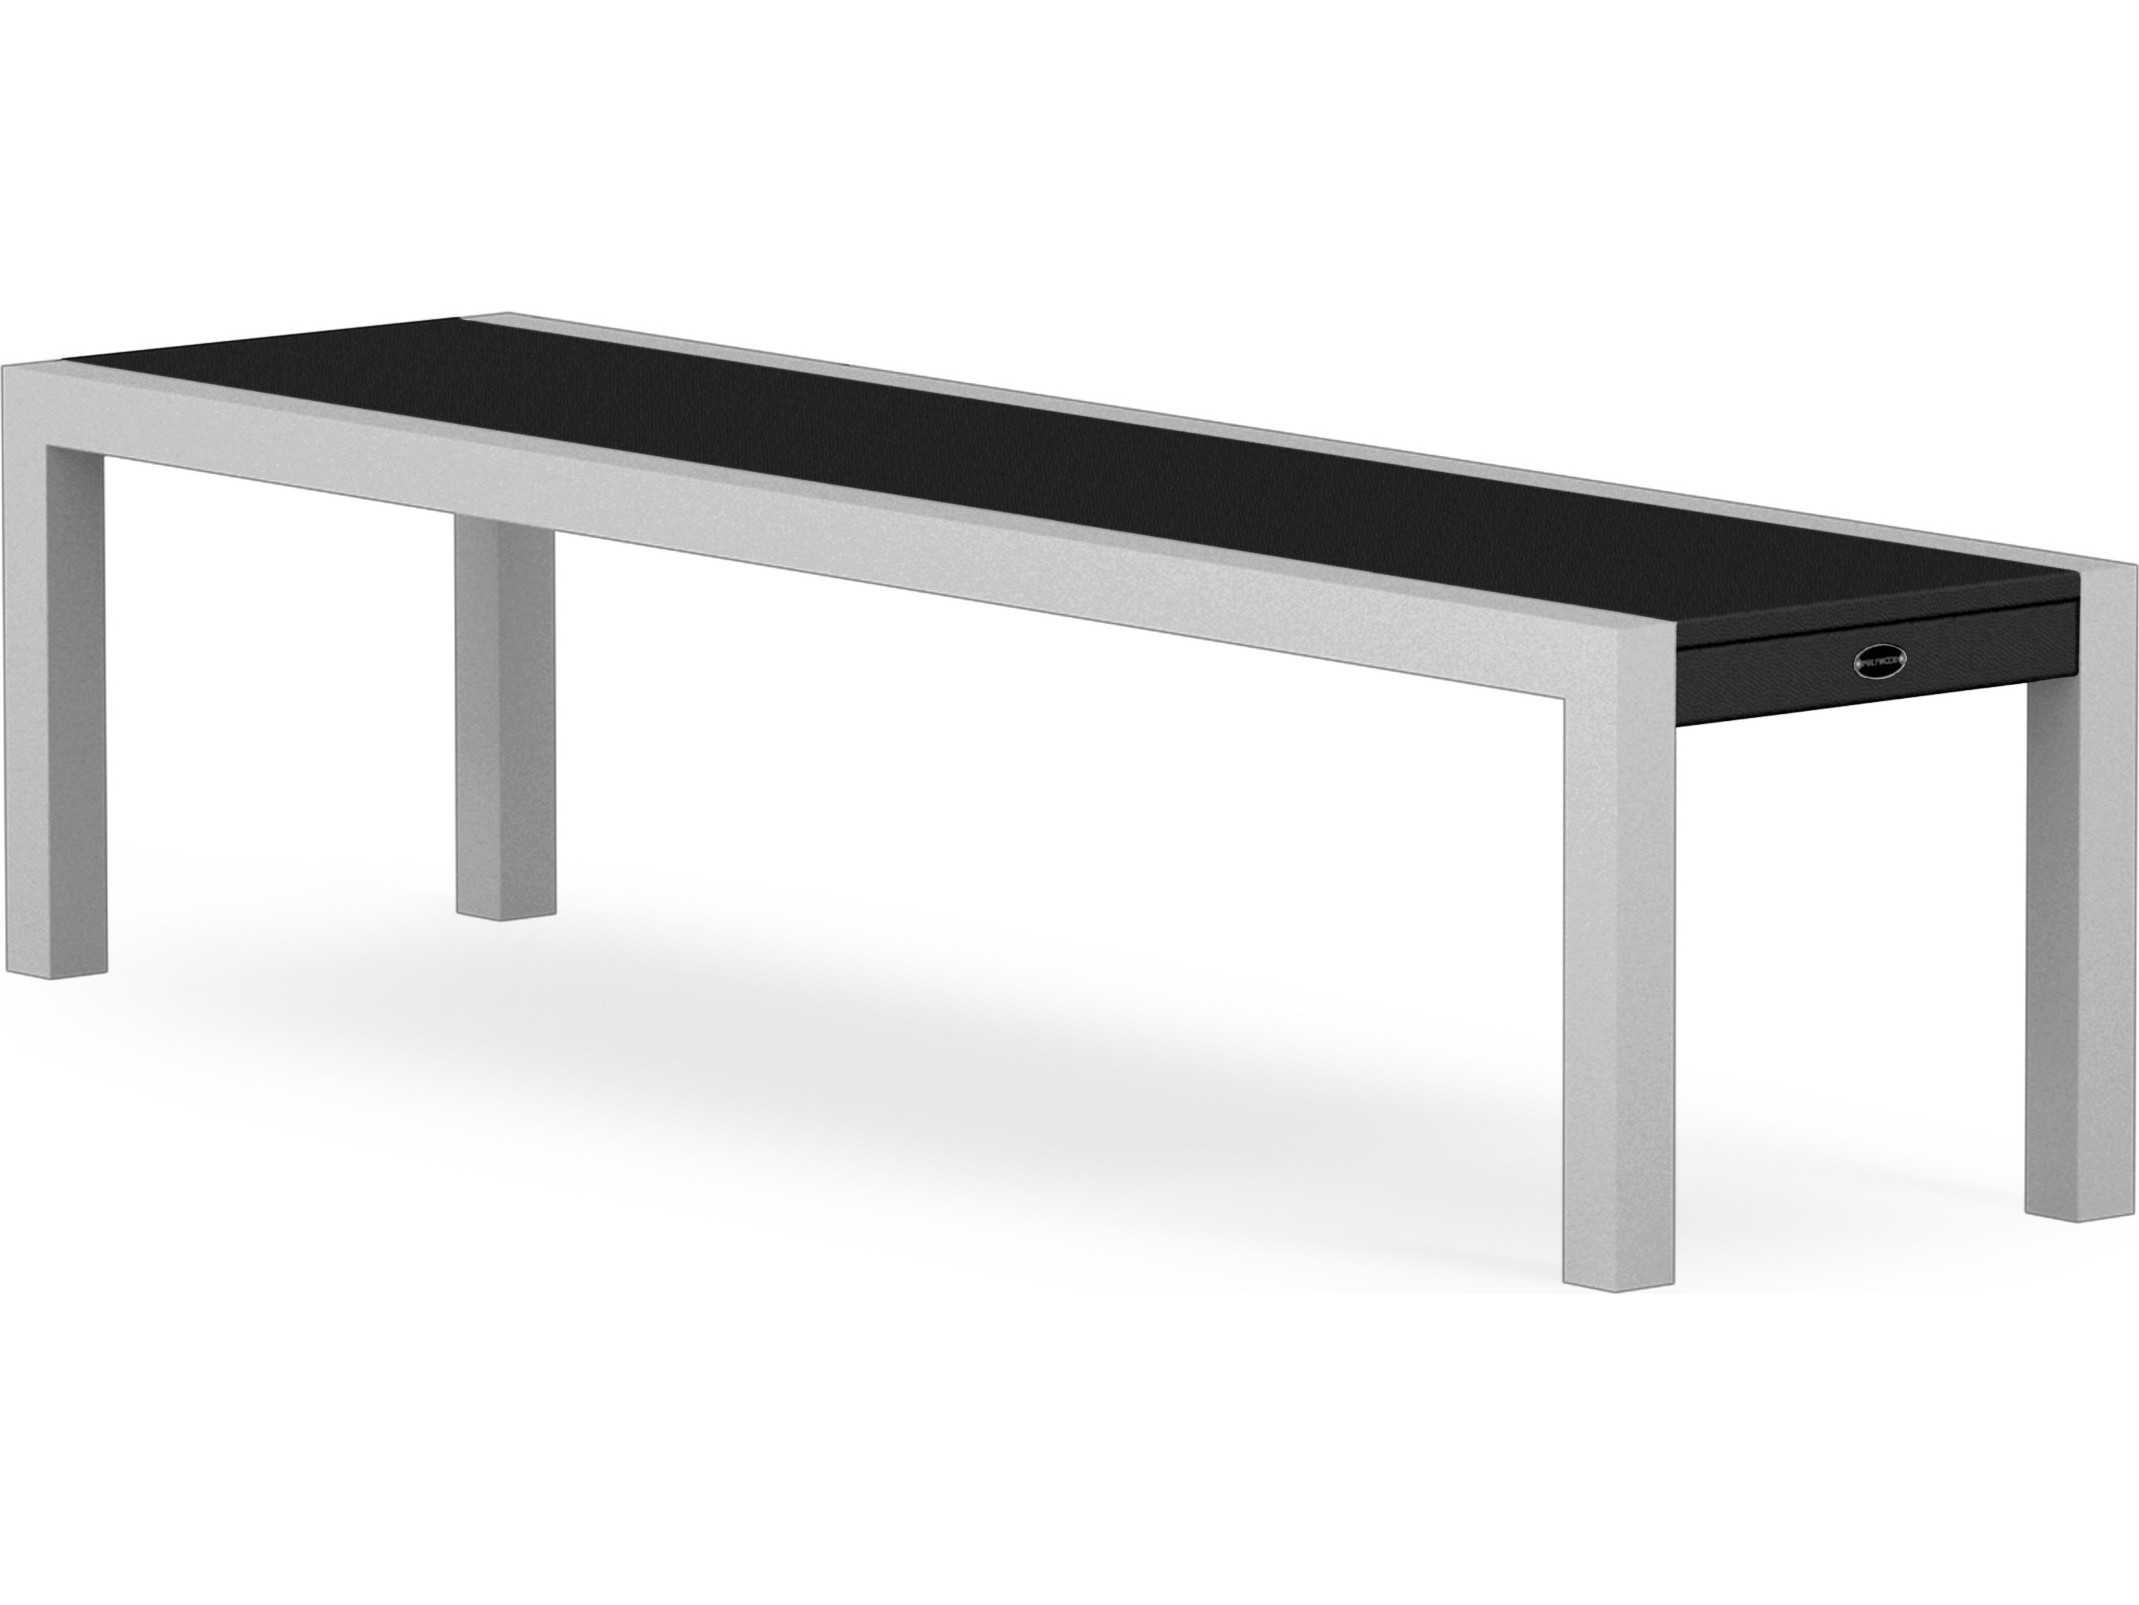 Brilliant Polywood Metro Aluminum Bench Gmtry Best Dining Table And Chair Ideas Images Gmtryco